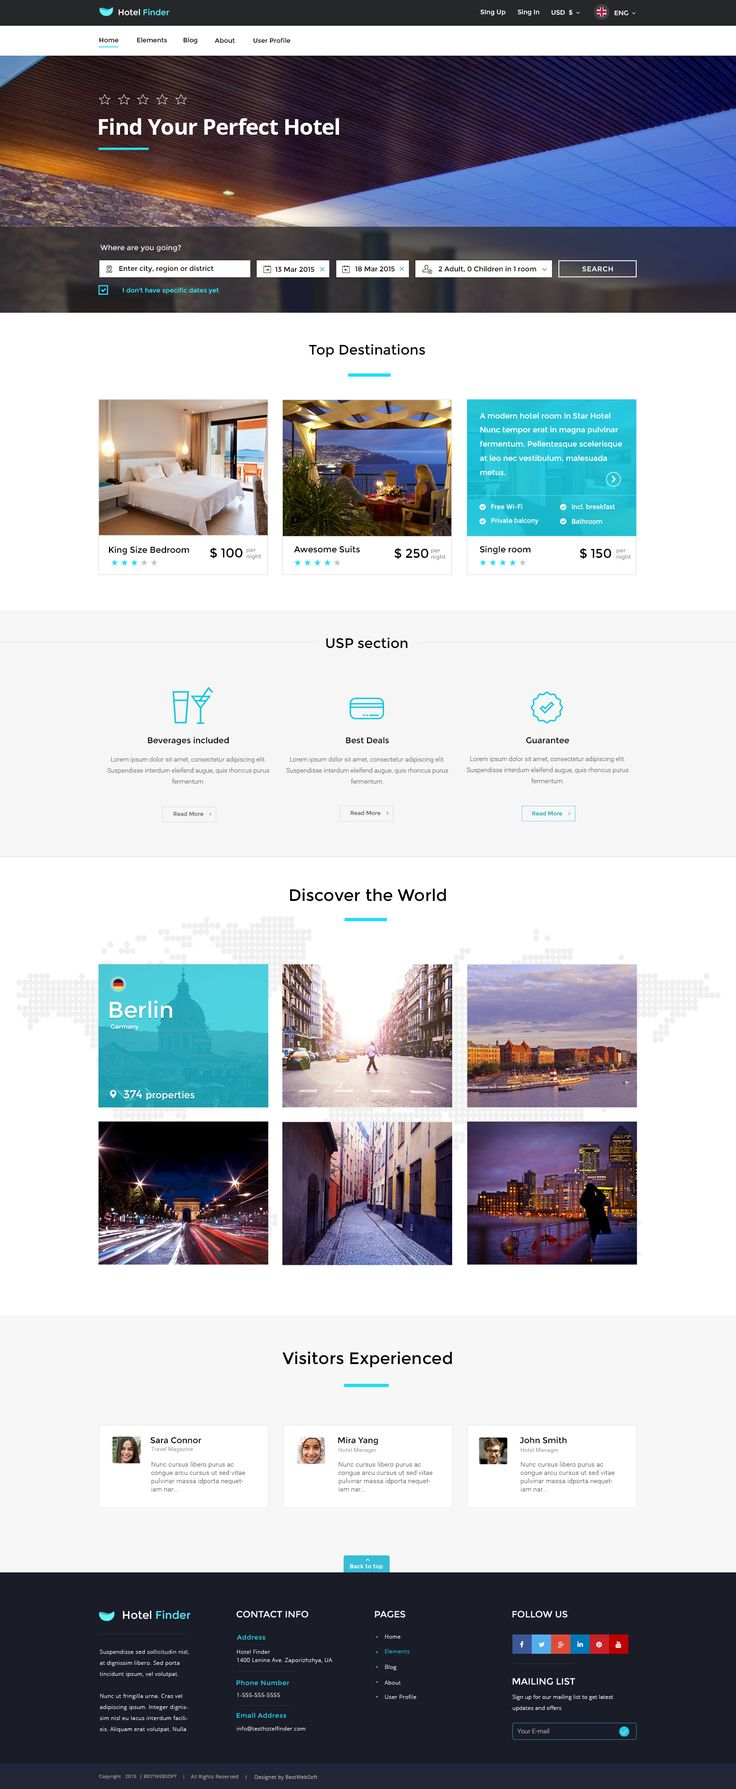 Hotel Finder - Online Booking HTML Website Template #site #hotel html template #tourism • Download ➝ https://themeforest.net/item/hotel-finder-online-booking-html-website-template/15407414?ref=pxcr